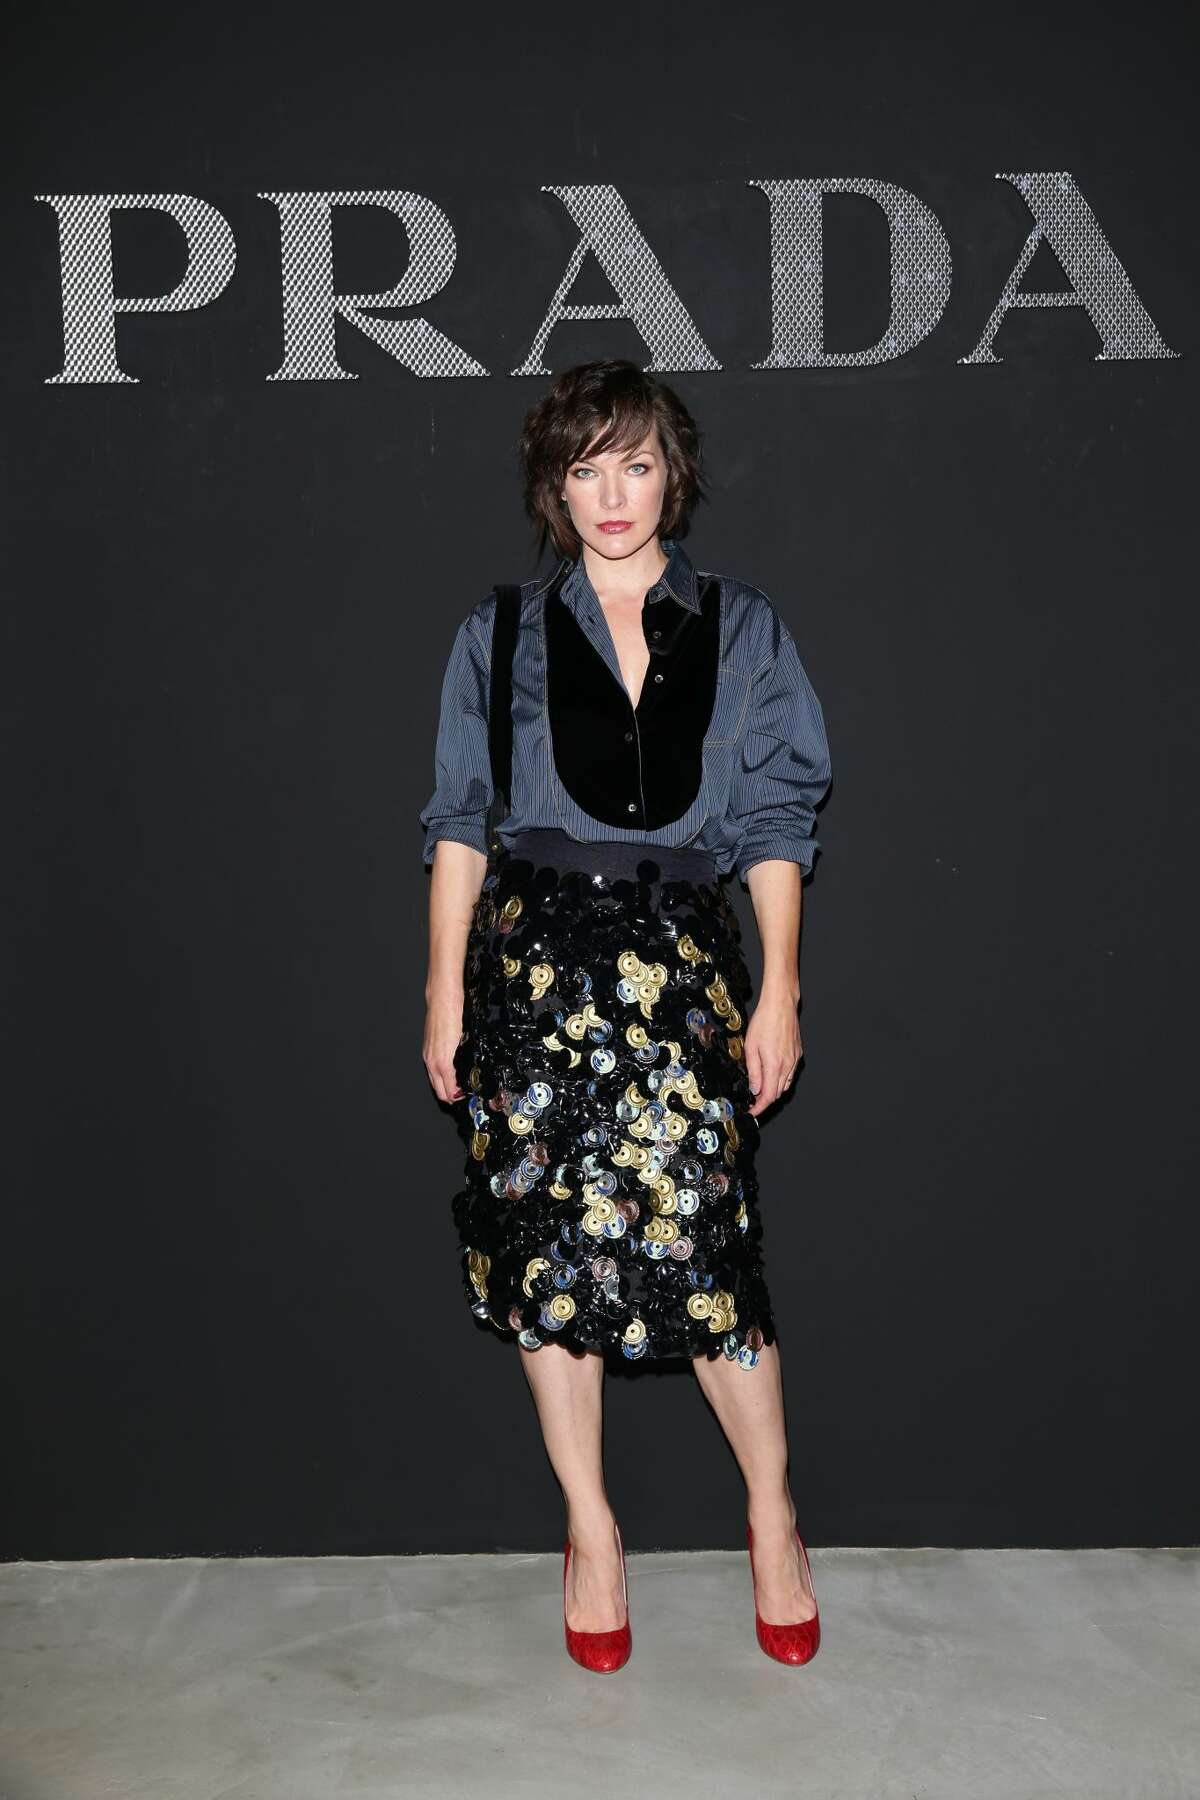 Best: Milla Jovovich knows how to accesorize a sequined skirt at the Prada show in Milan.